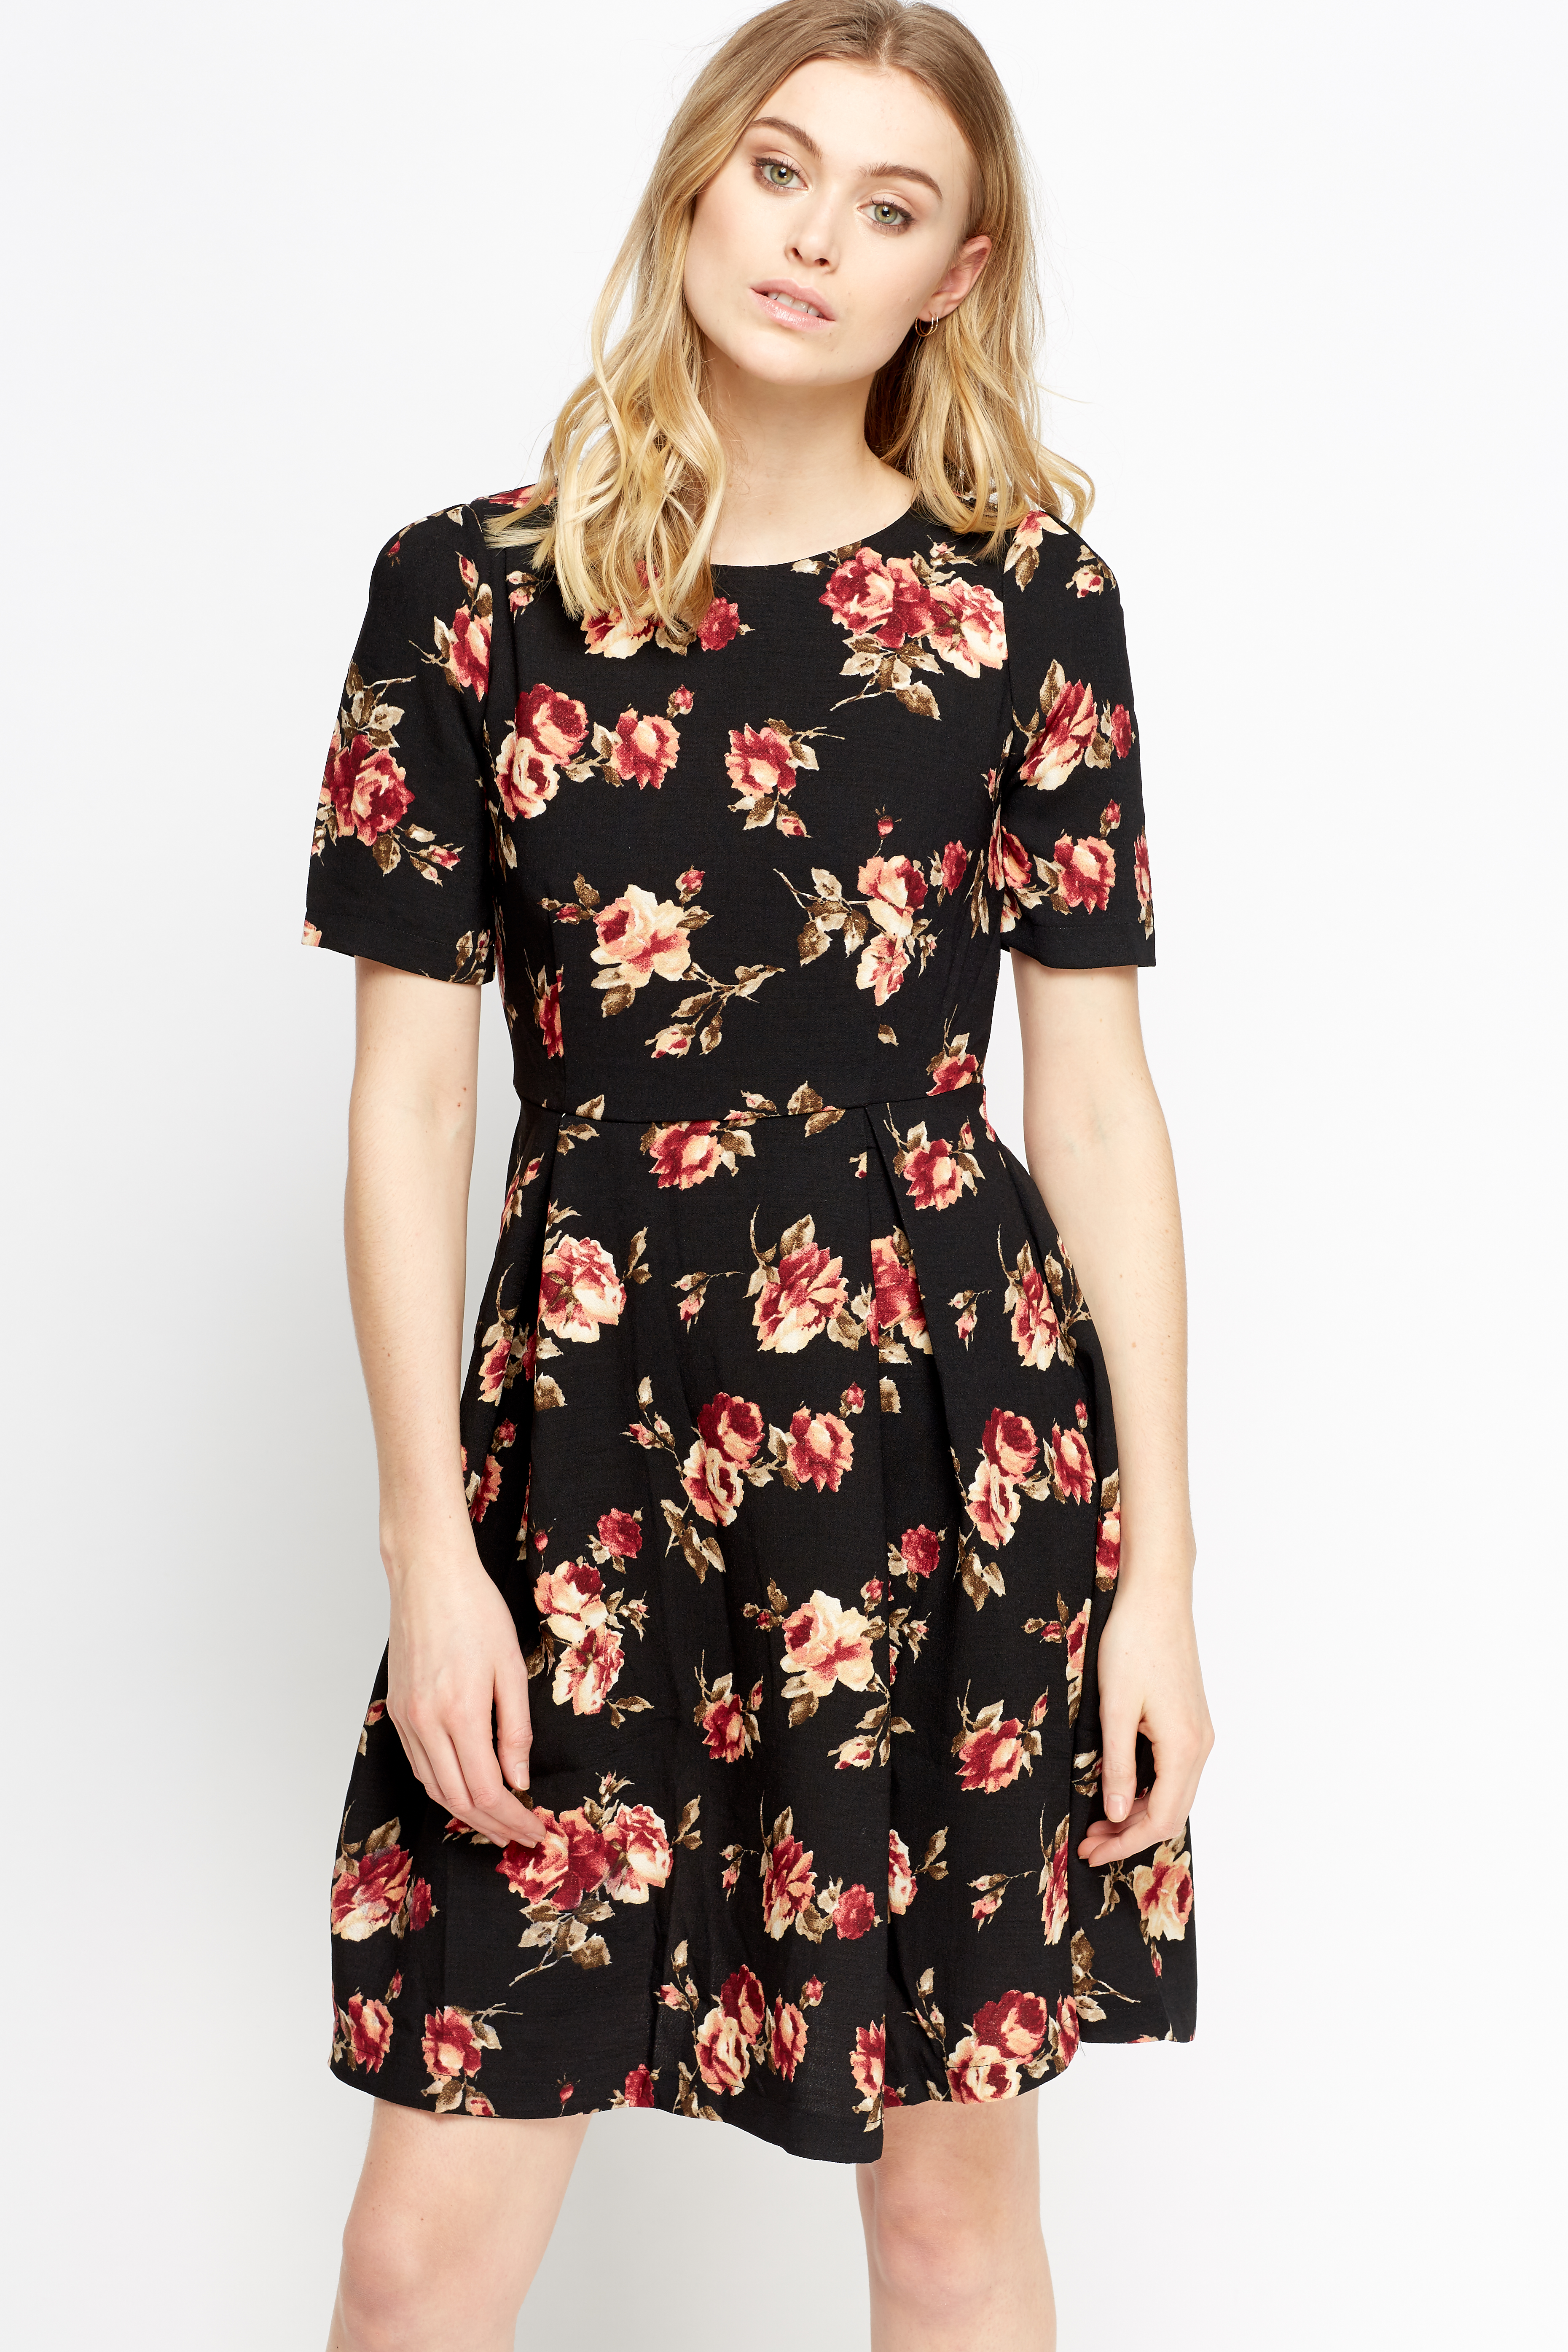 b8ec31ed42 Black Floral Skater Dress - Just £5